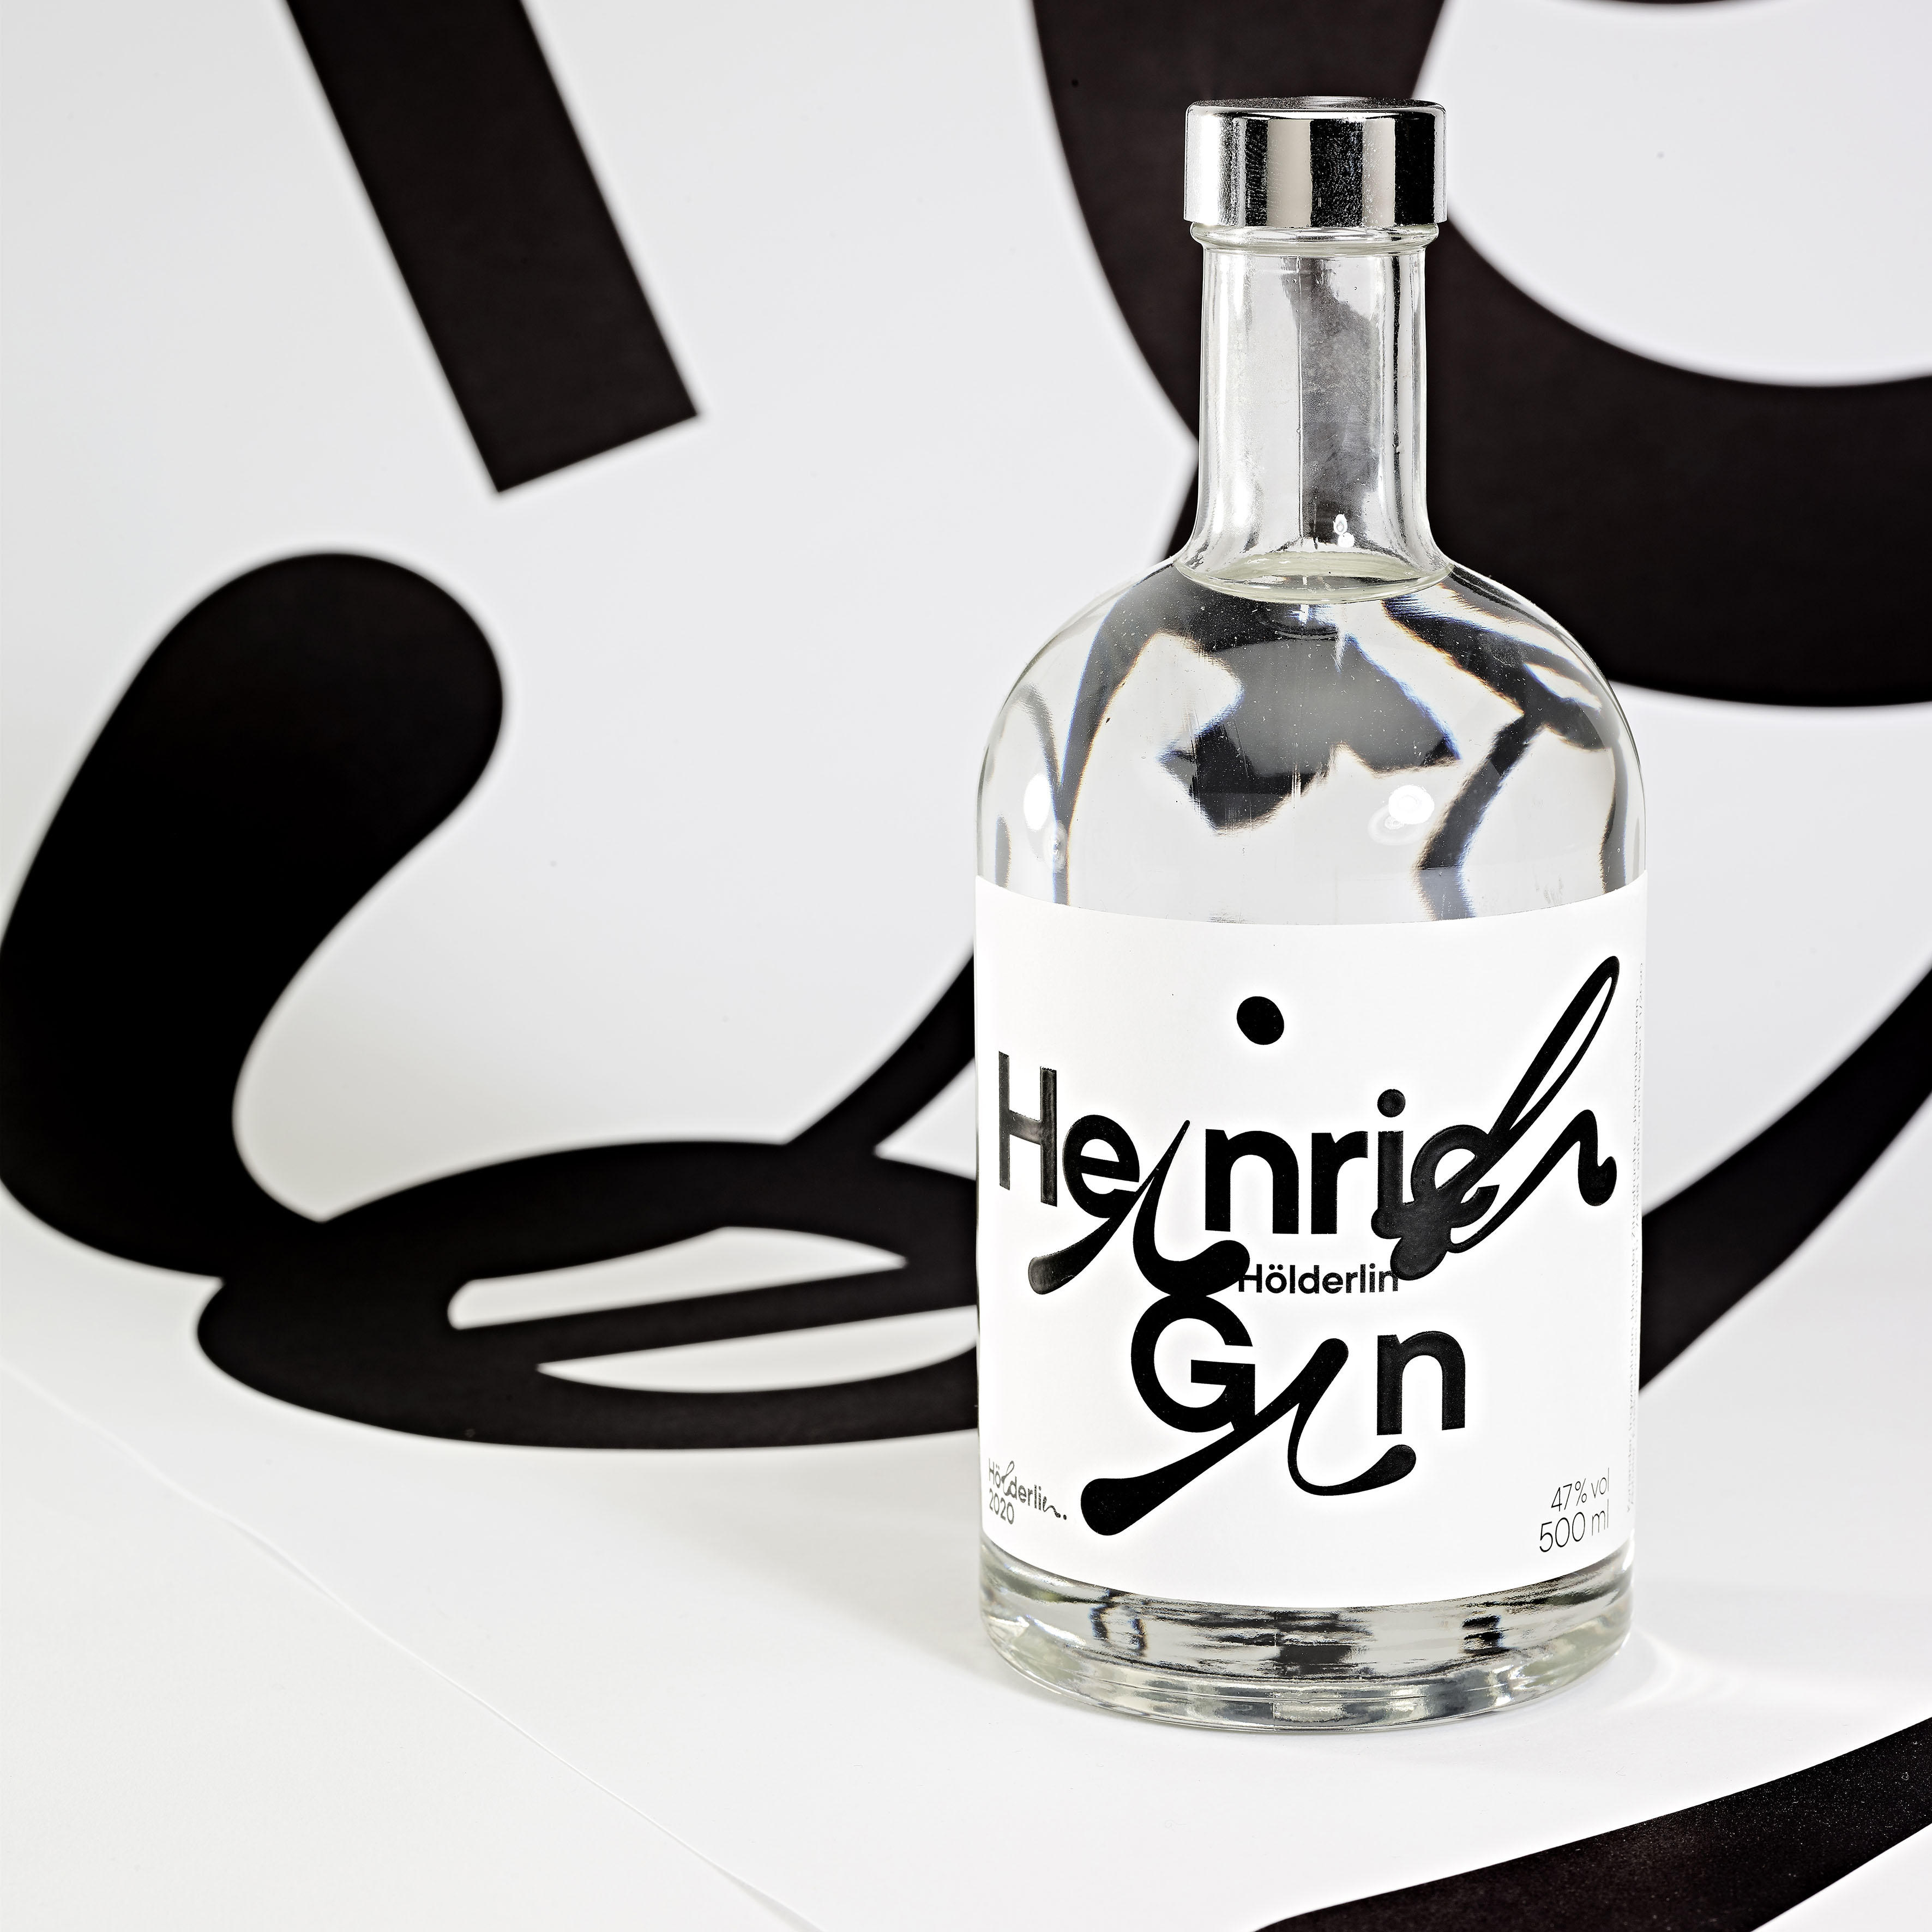 Ina Bauer Creates Label and Packaging Design for Hölderlin2020 Wine and Gin